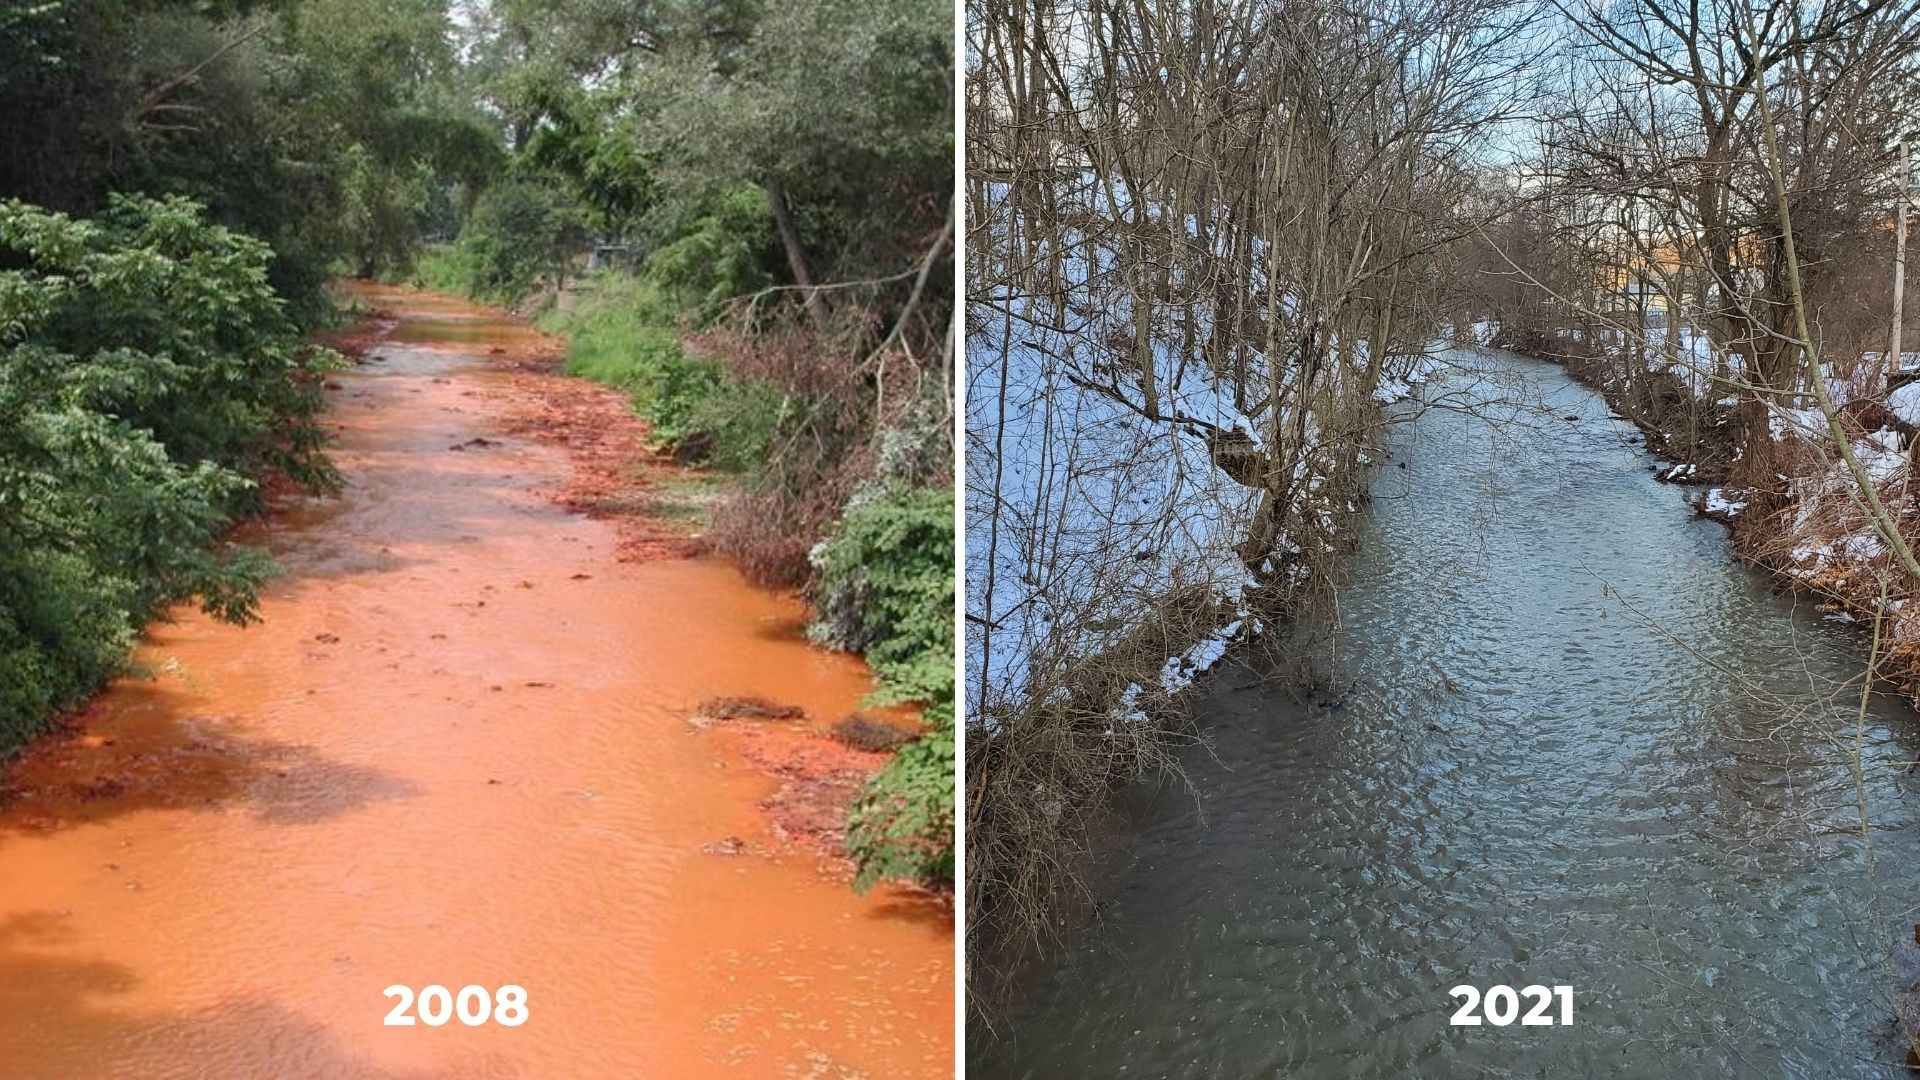 orange creek labeled 2008, same location pictured with blue-green water in 2011